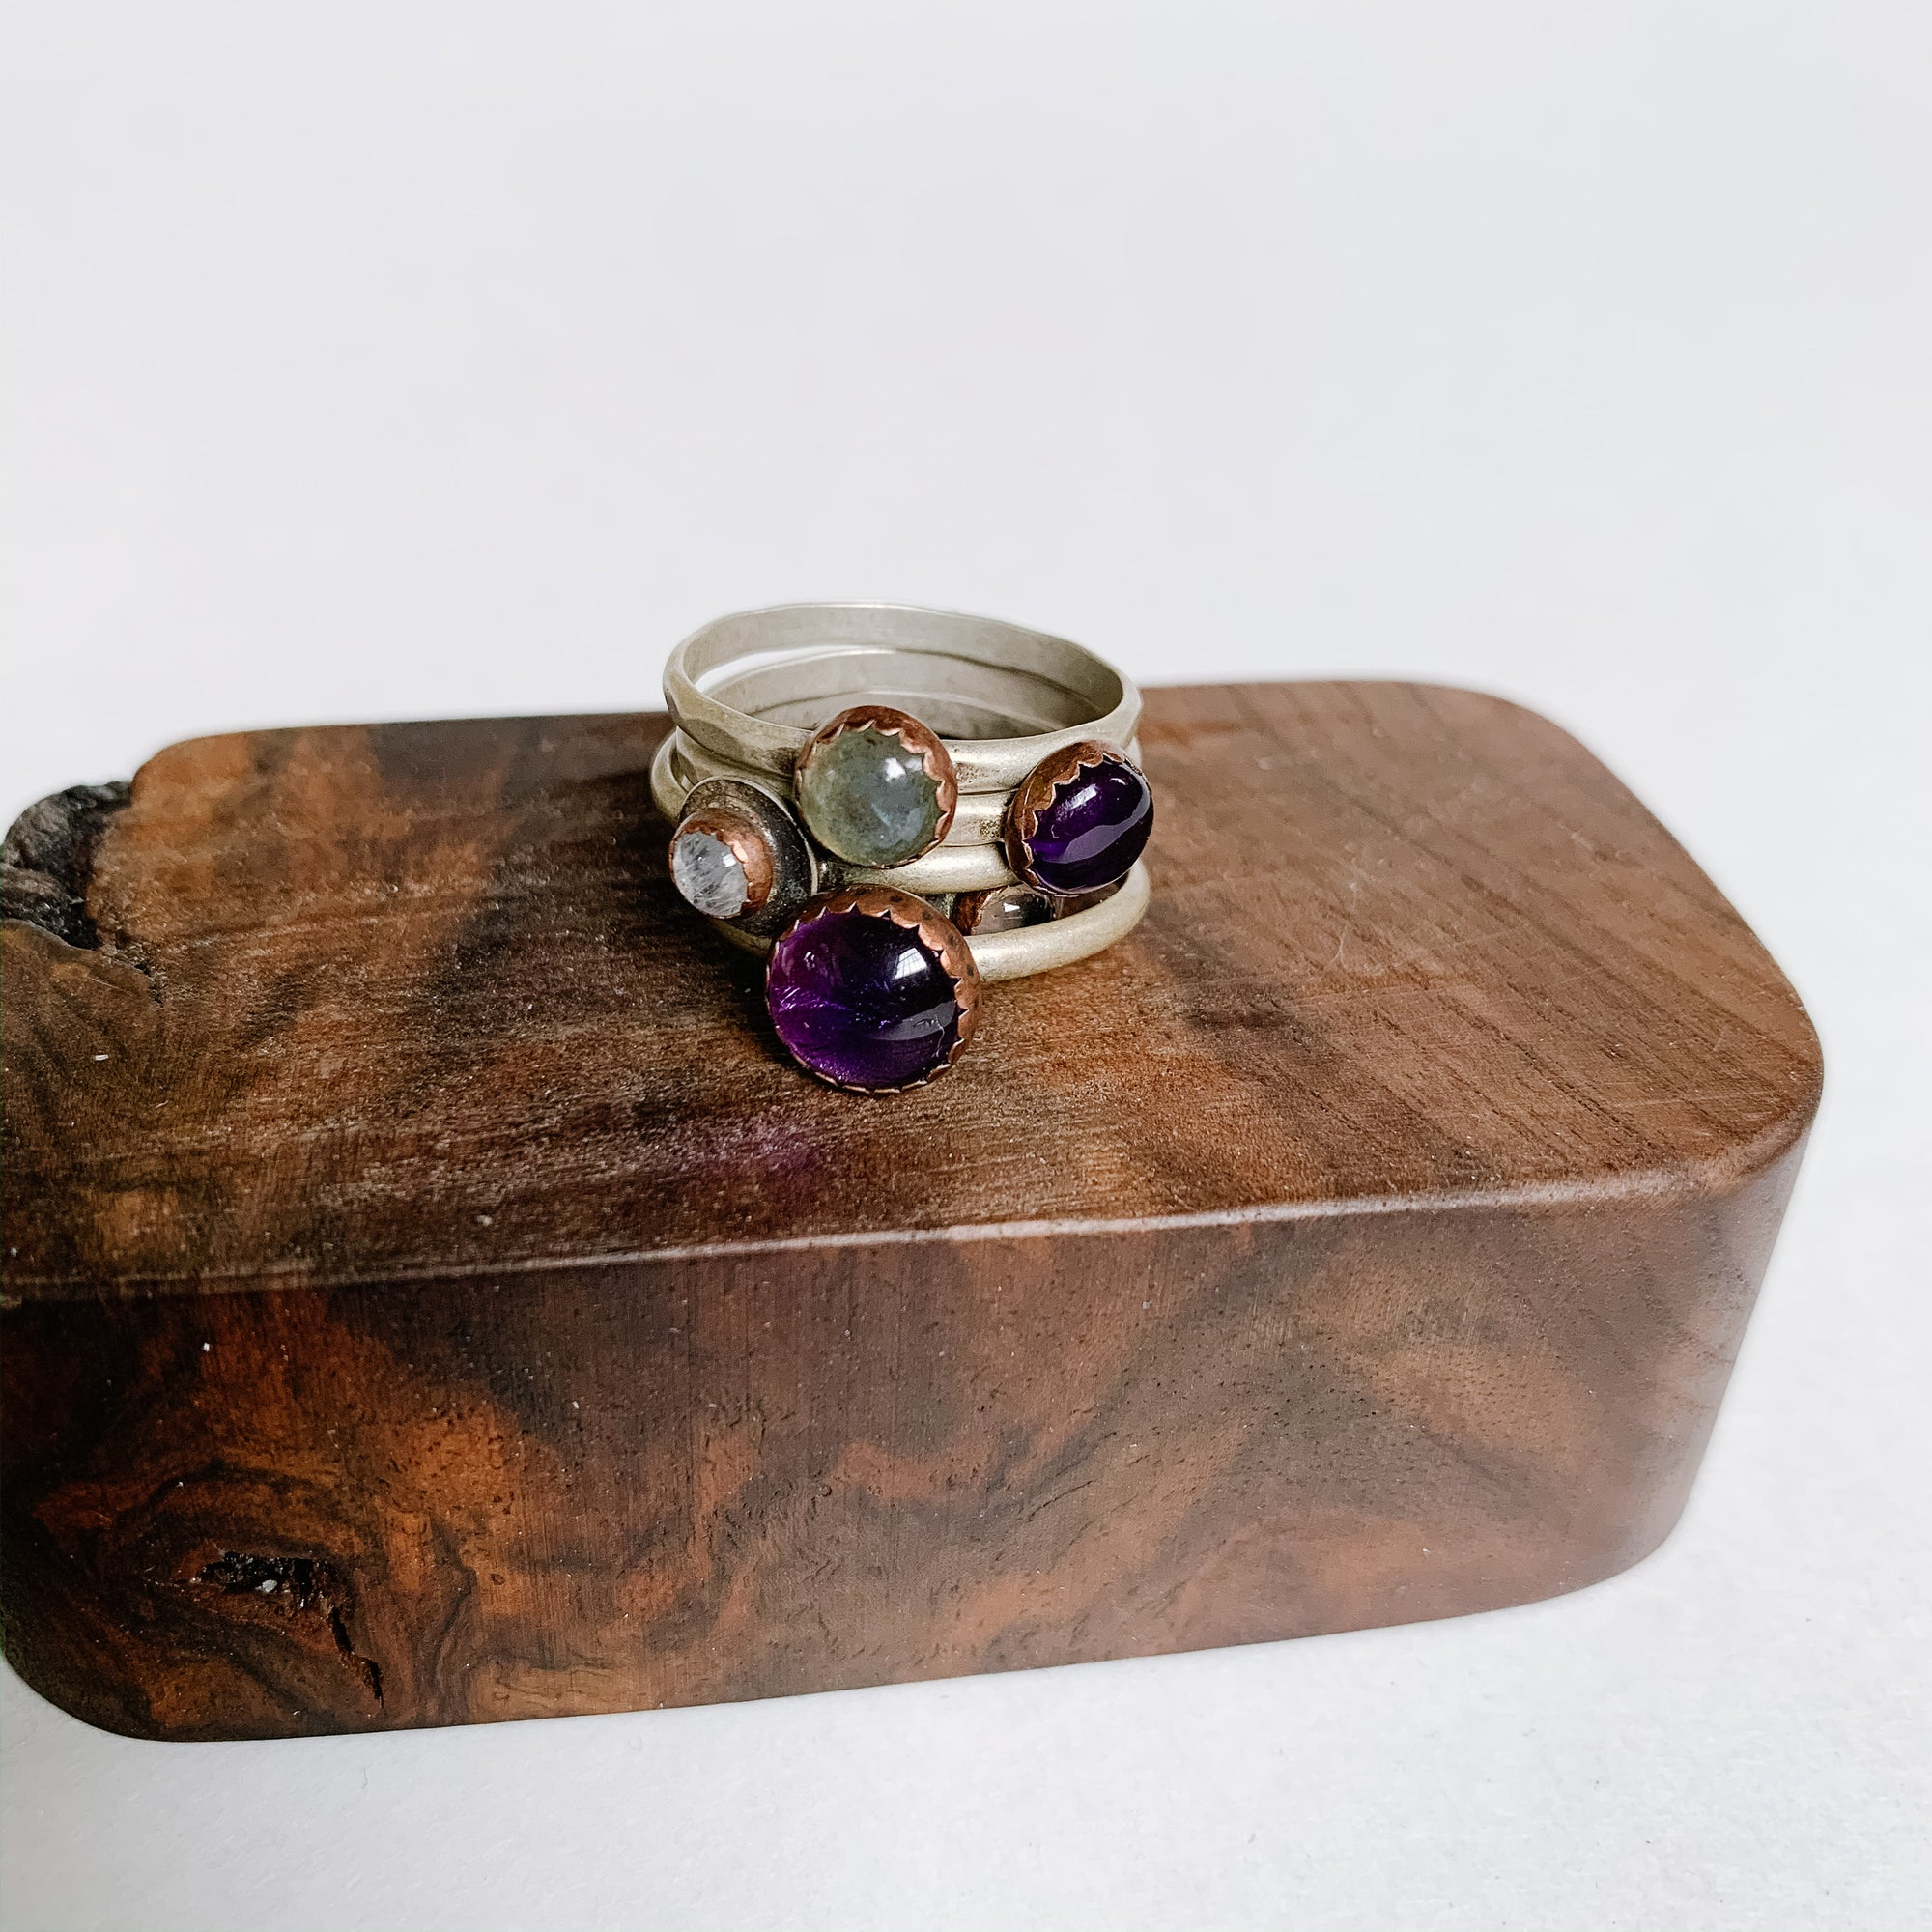 Small Amethyst Boho Stacking Ring - size 7.5 - Femme Wares Niagara Local Small Business